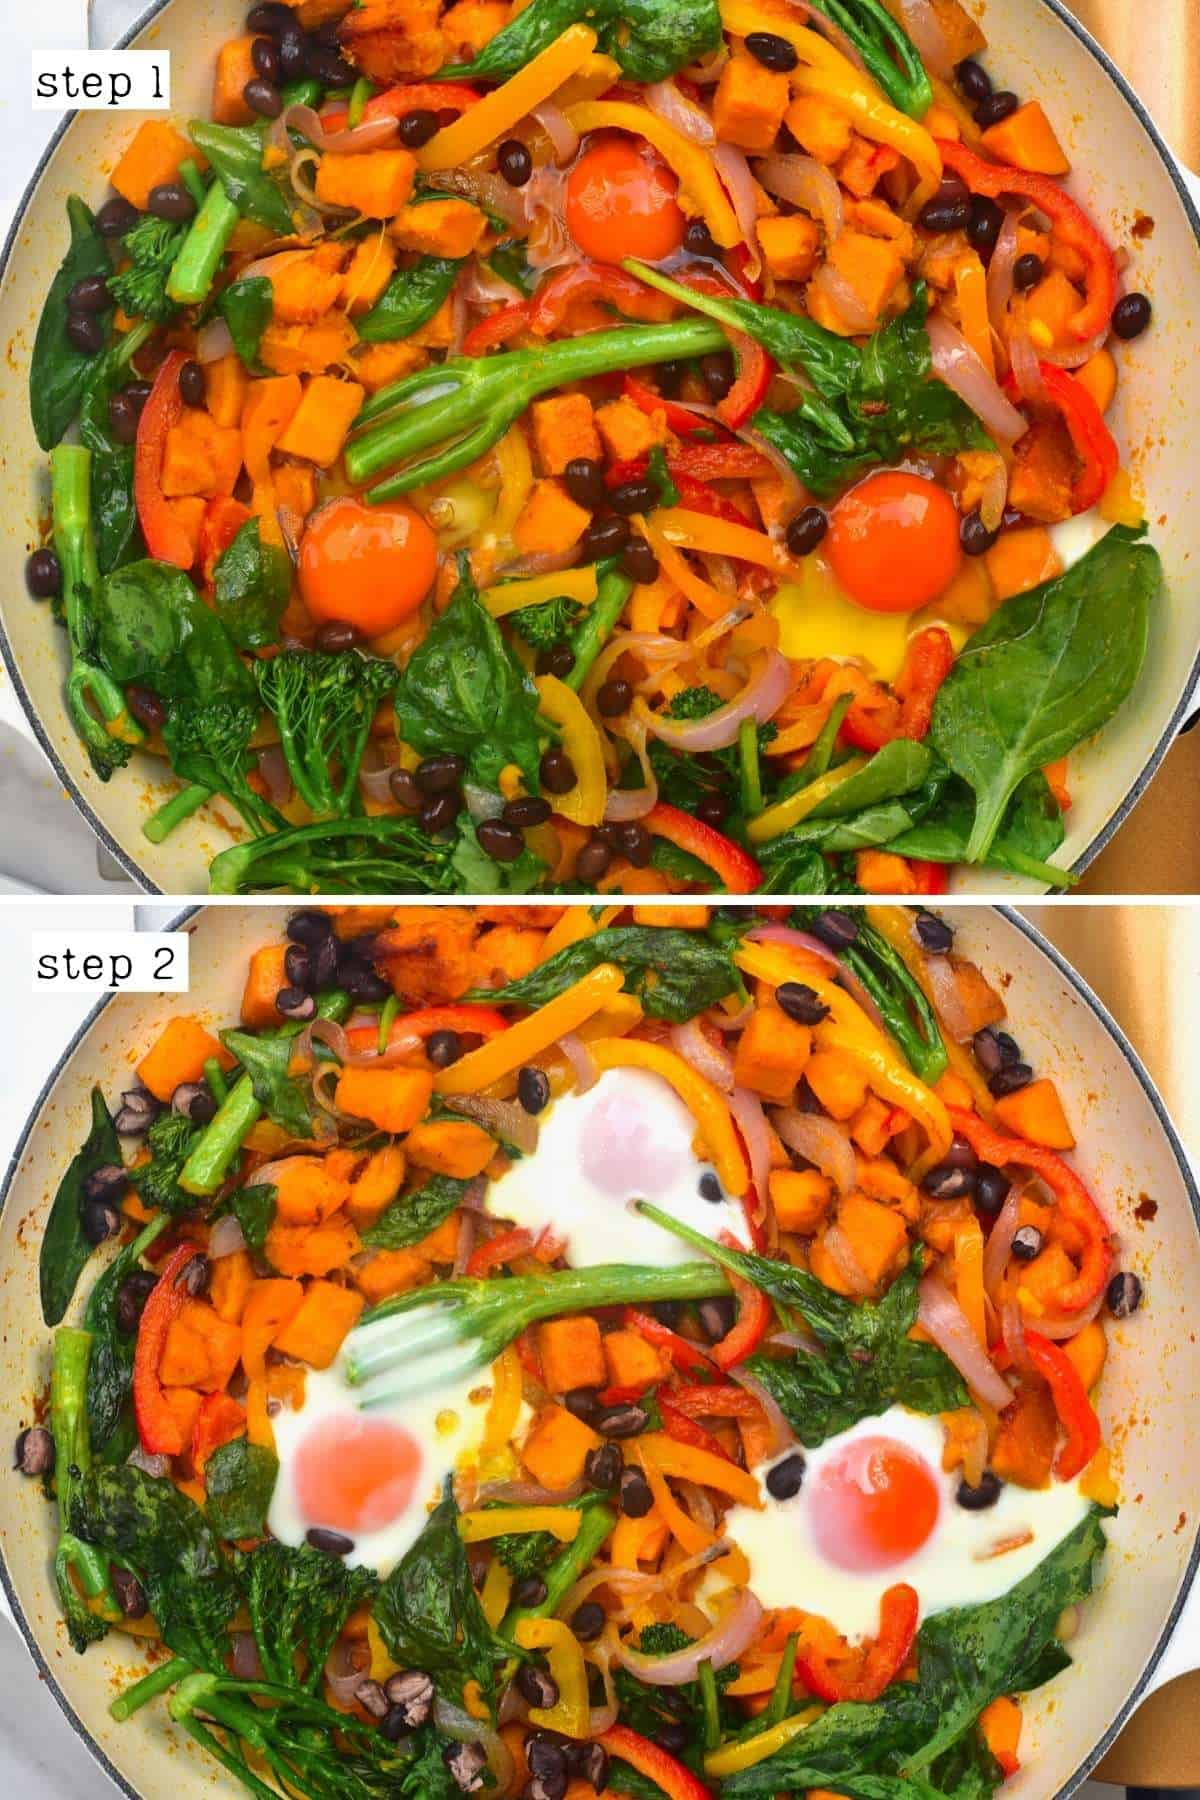 Steps for making sweet potato and egg hash